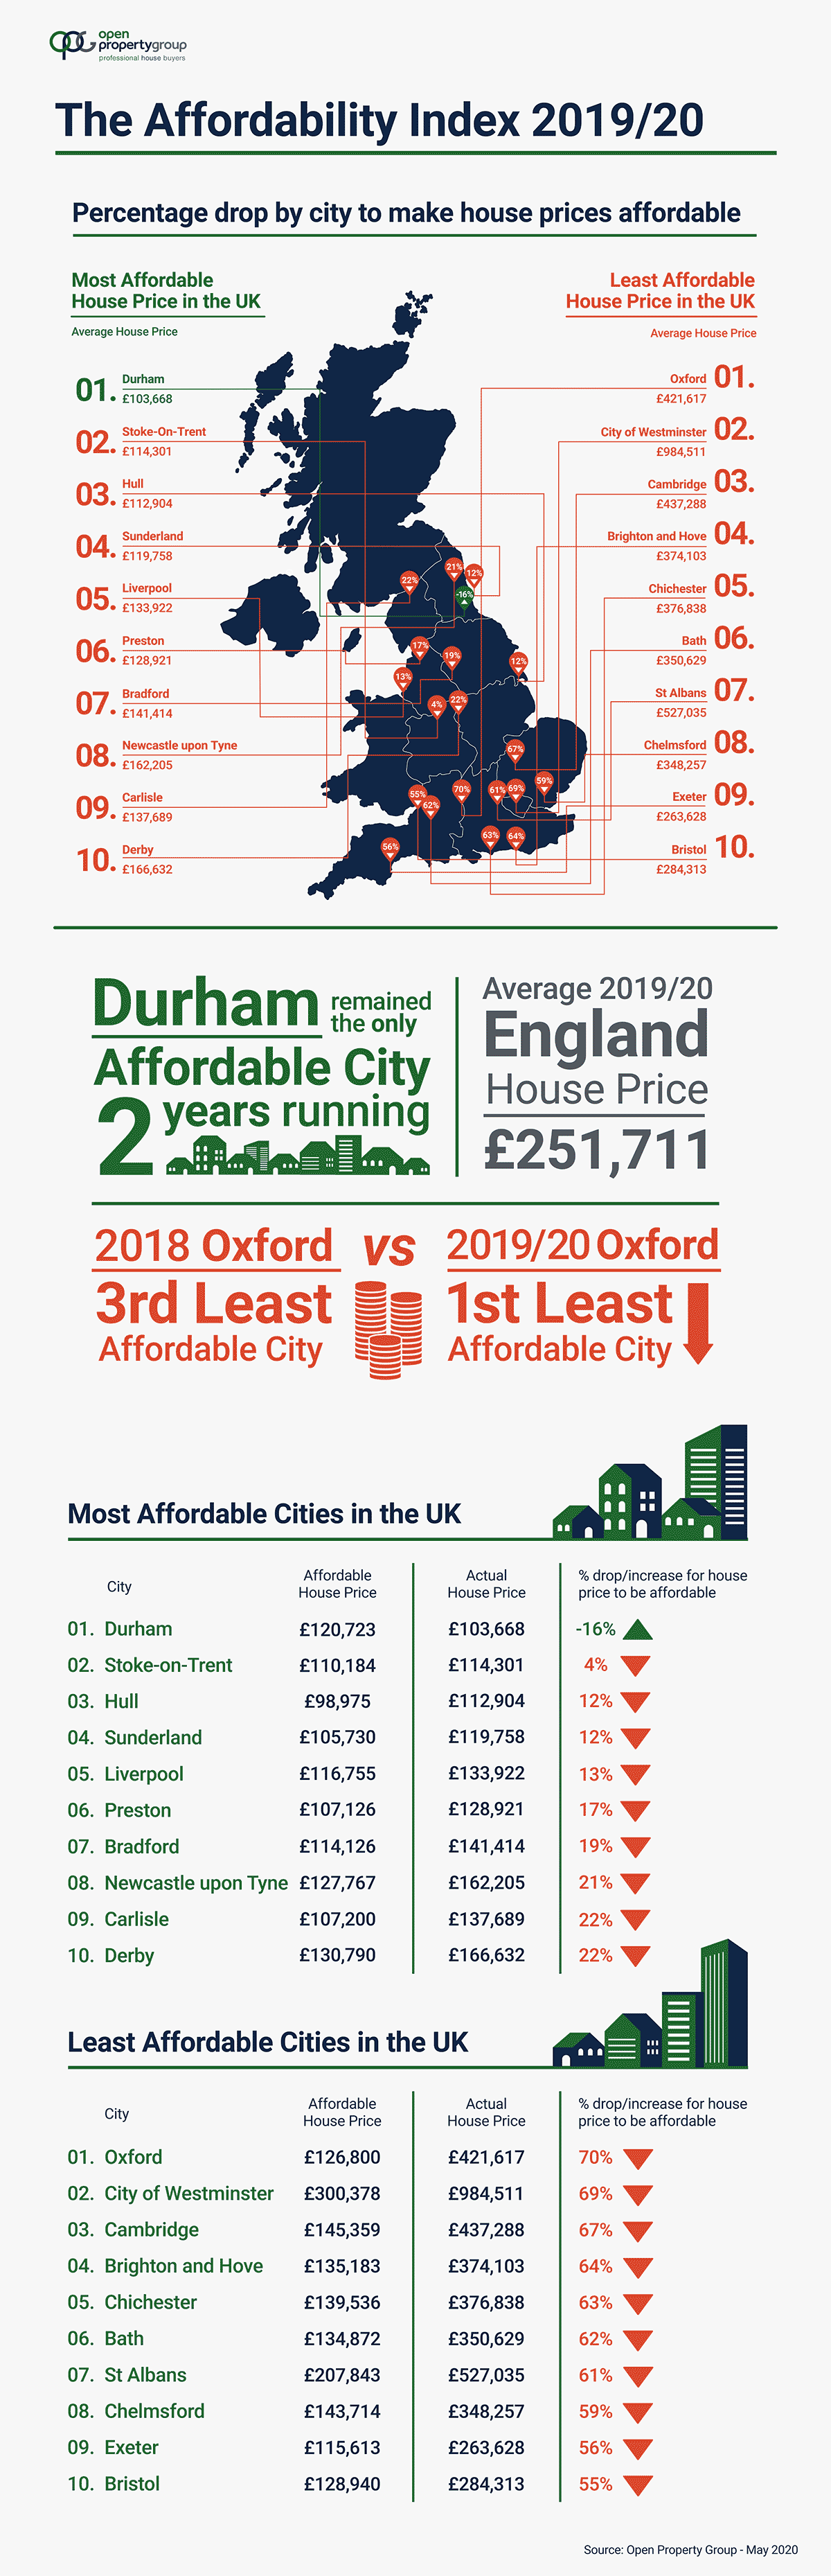 House Price Affordability Index 2019/20